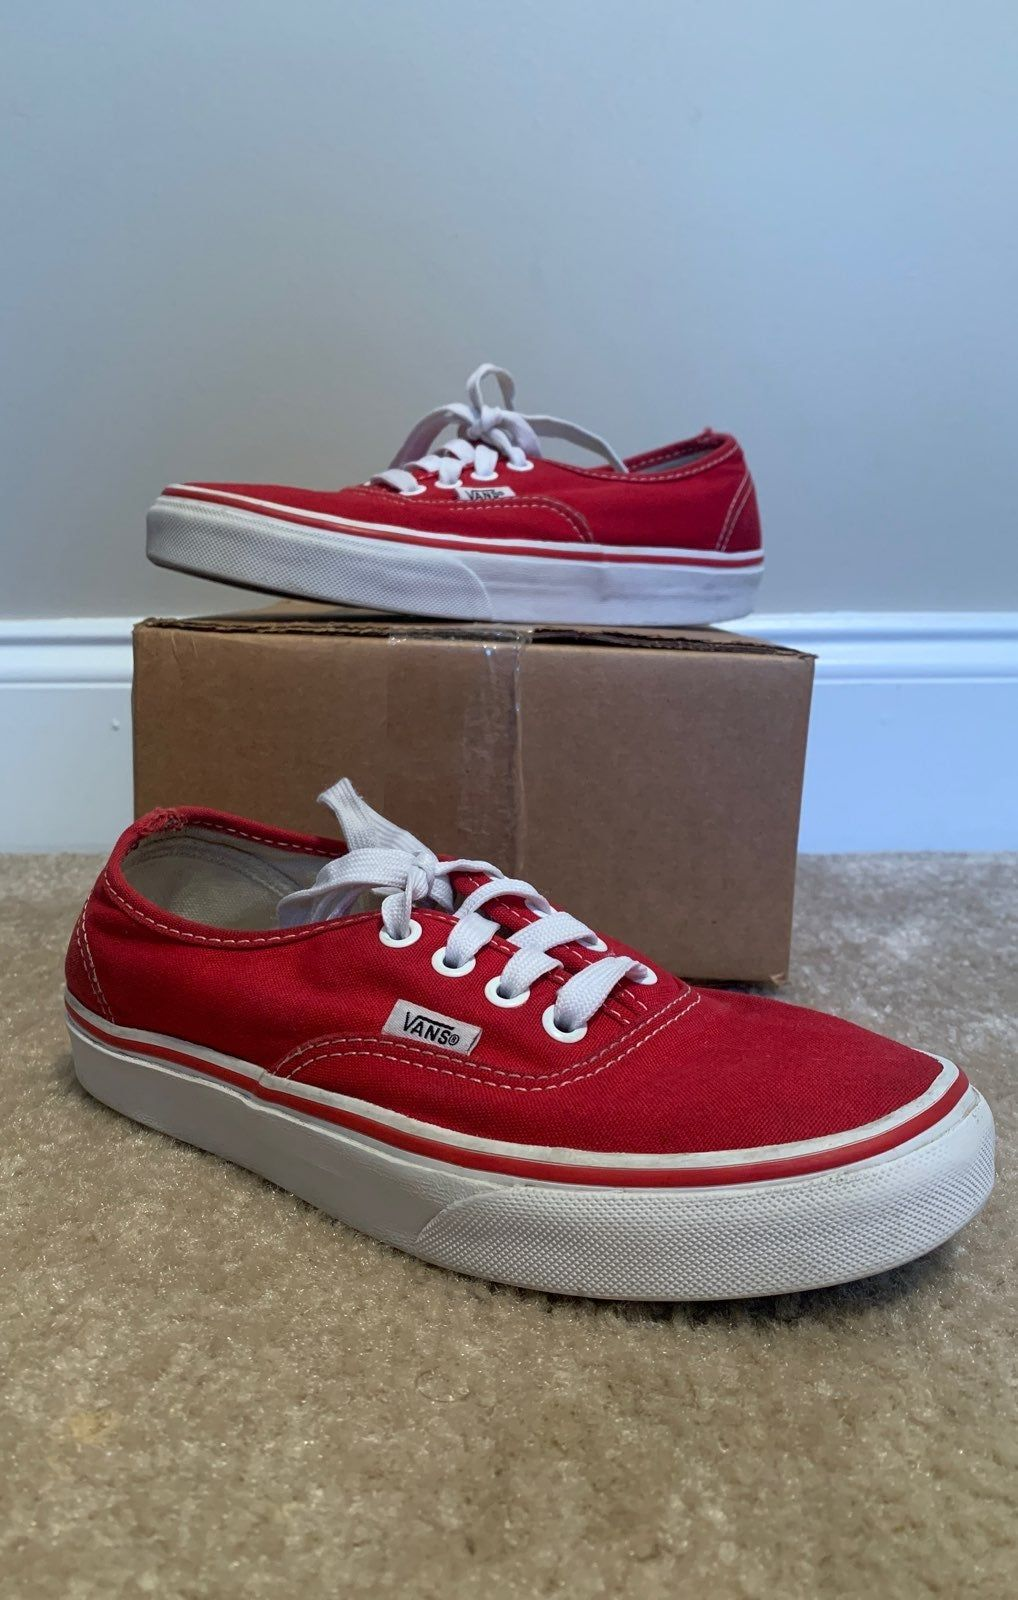 Red Authentic Vans Box logo in the back